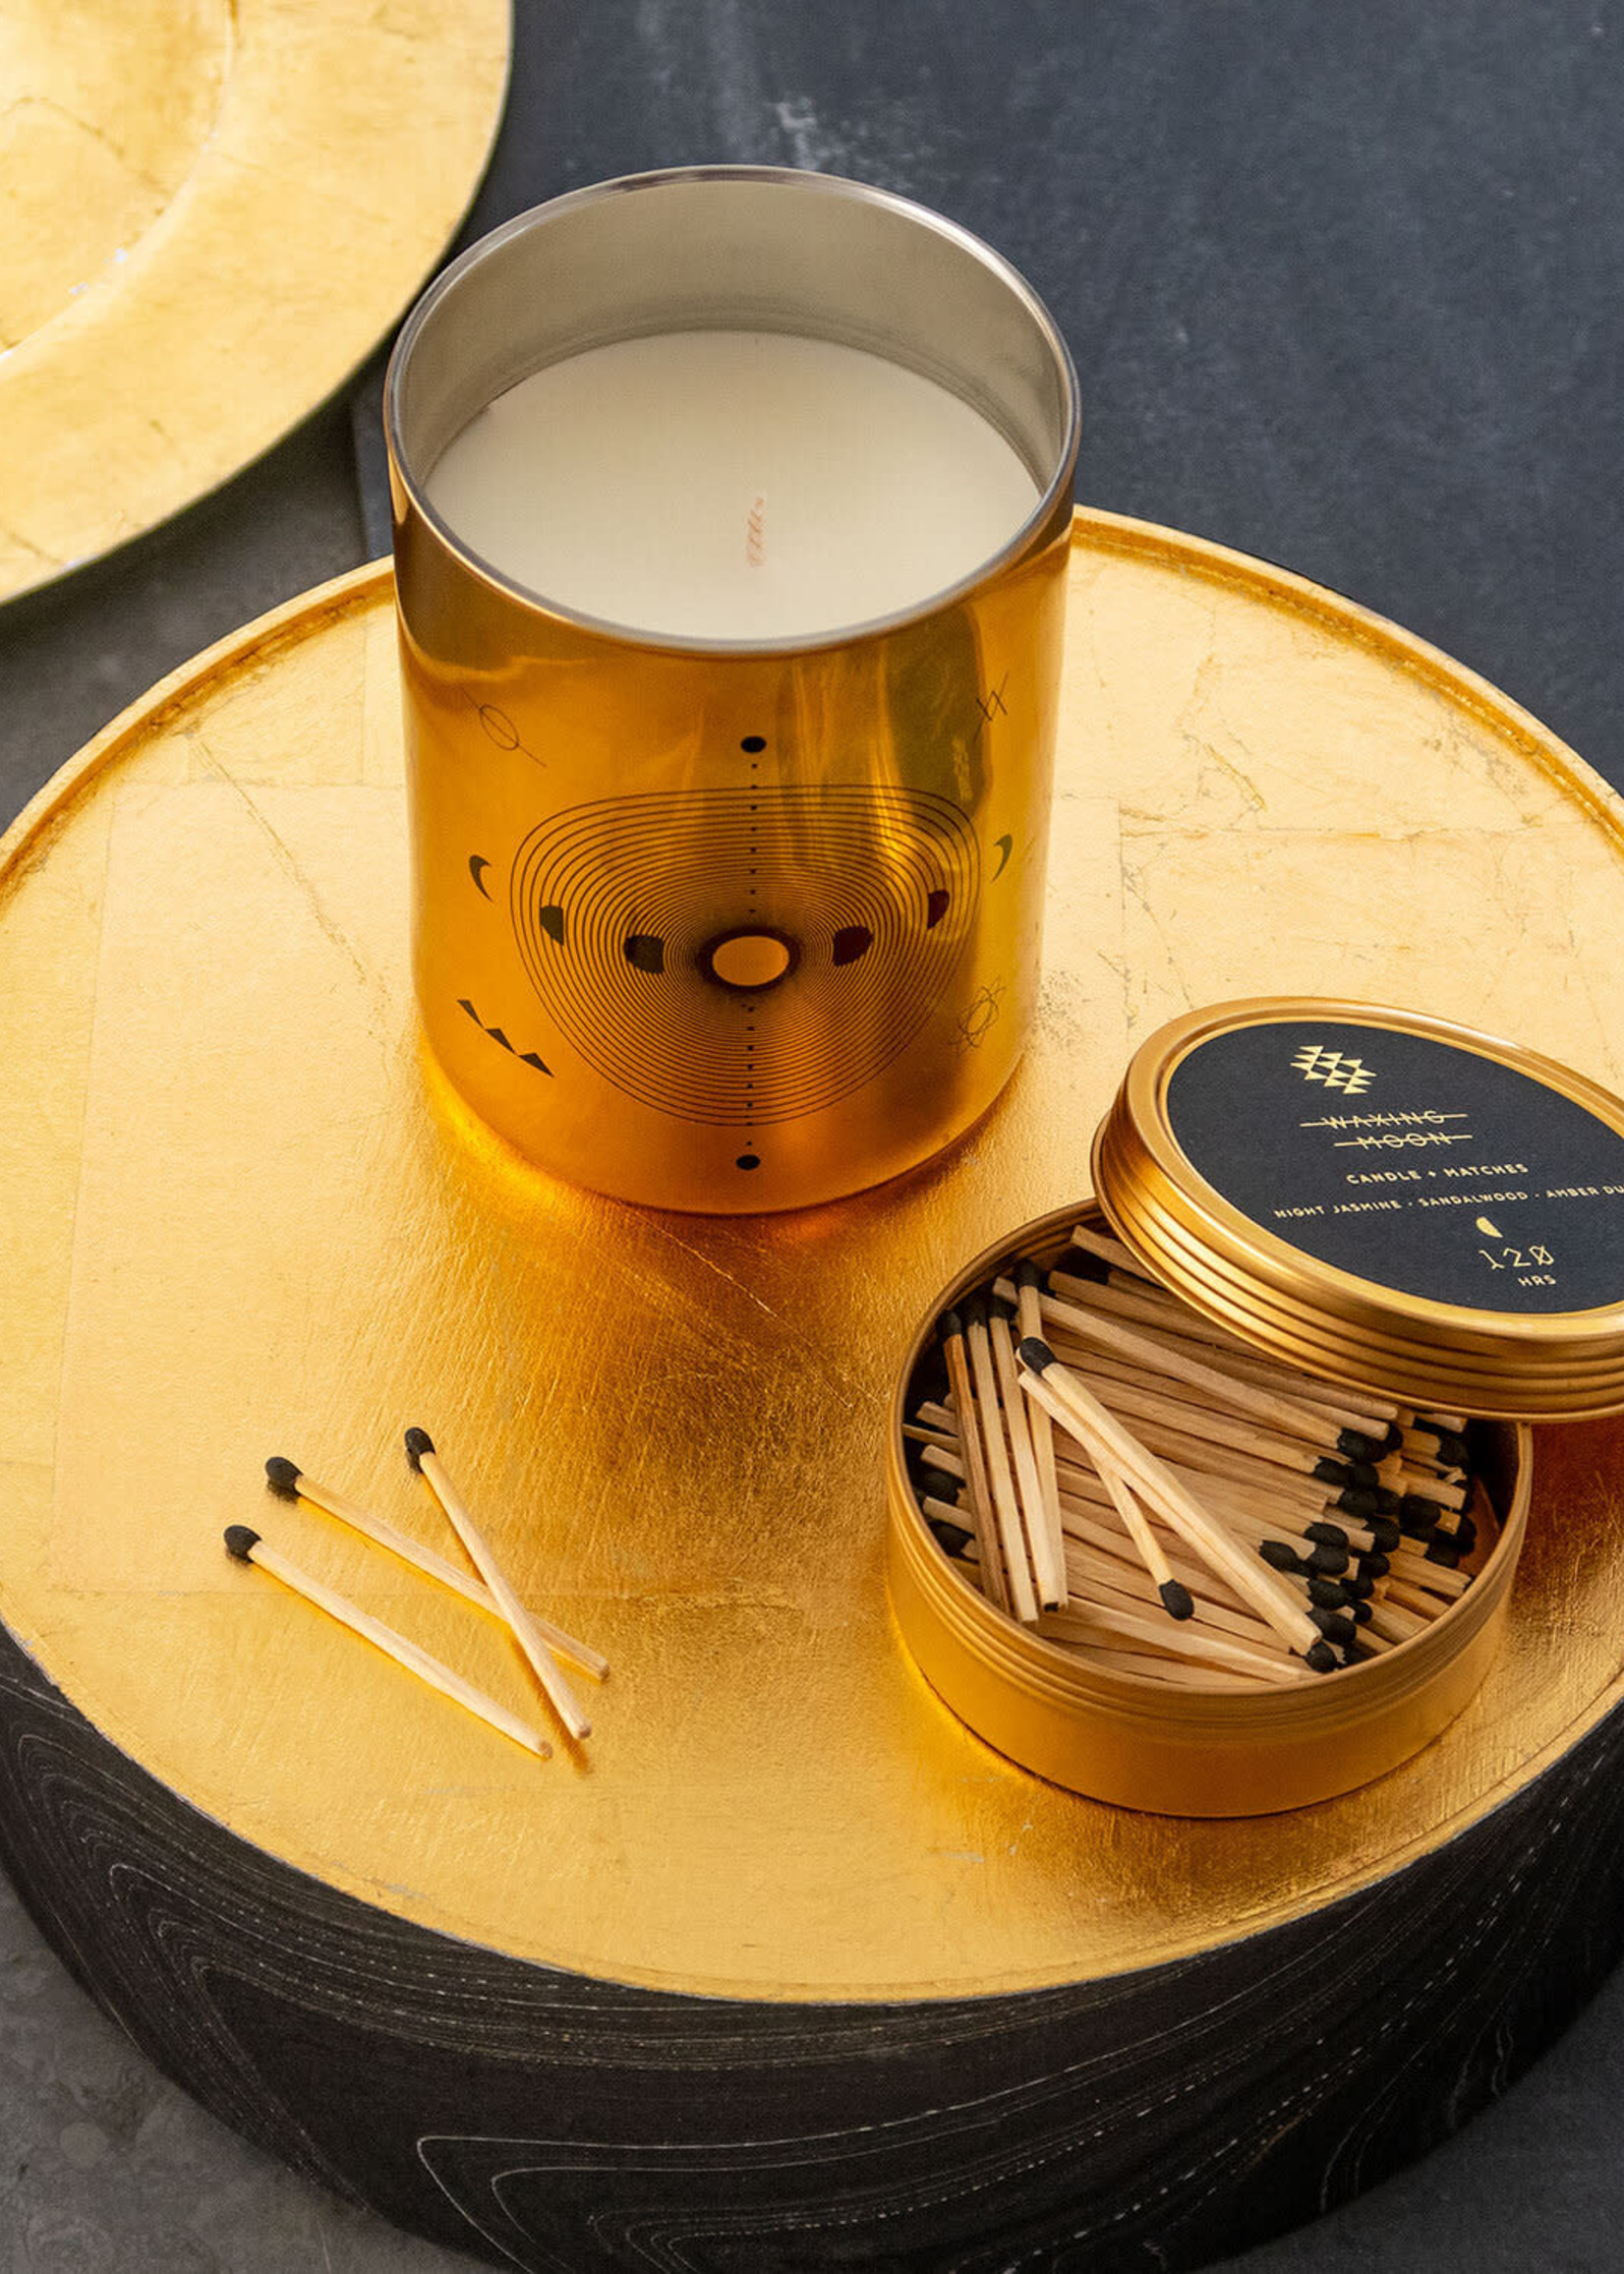 Waxing Moon Totem Candle with Matches